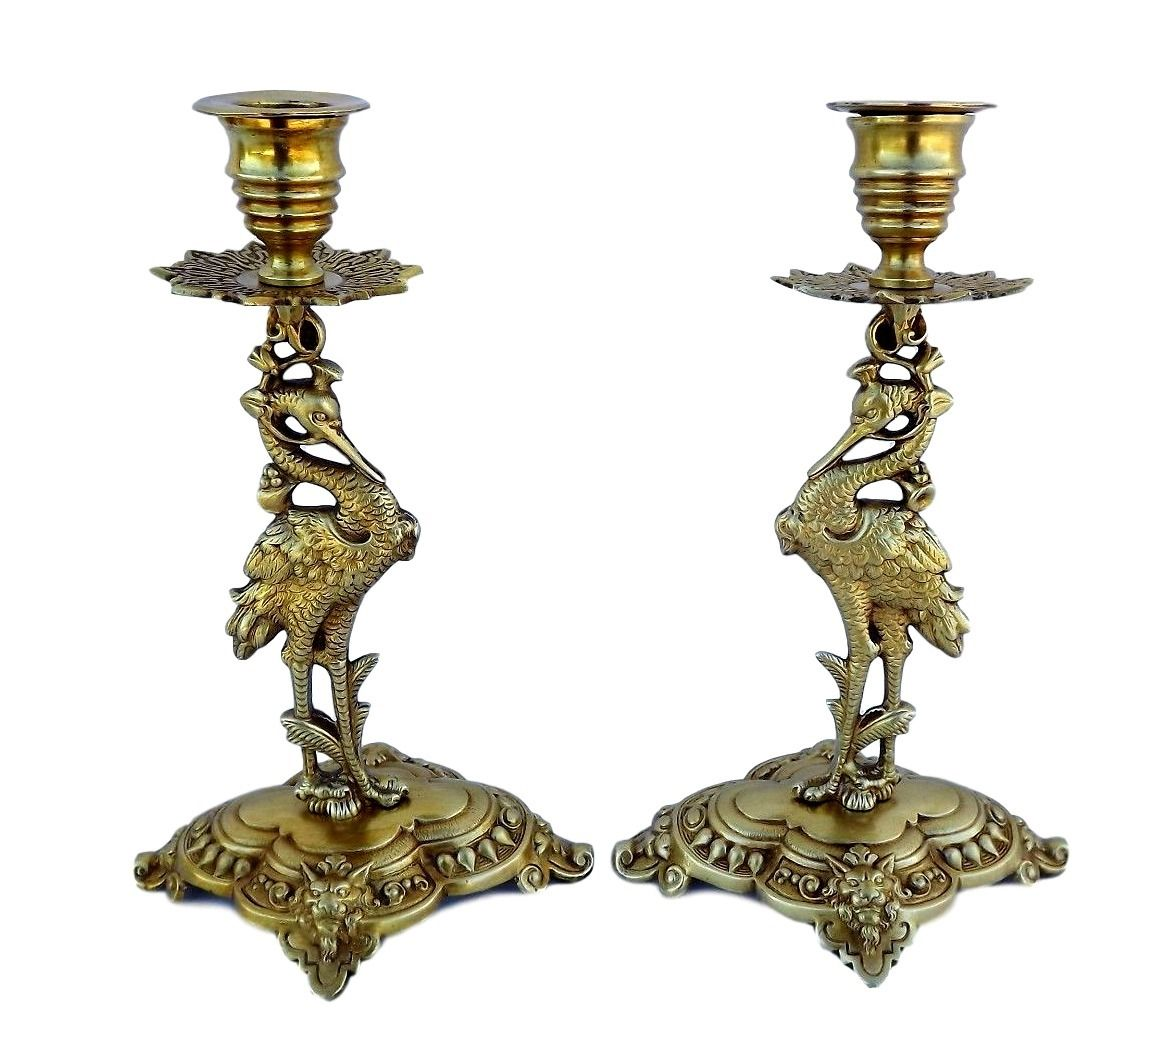 French Antique Pair of Candlestick - Ormolu Bronze Heron Crane Bird and Lion Figure Candle Holder - 19th, Castle Candlesticks